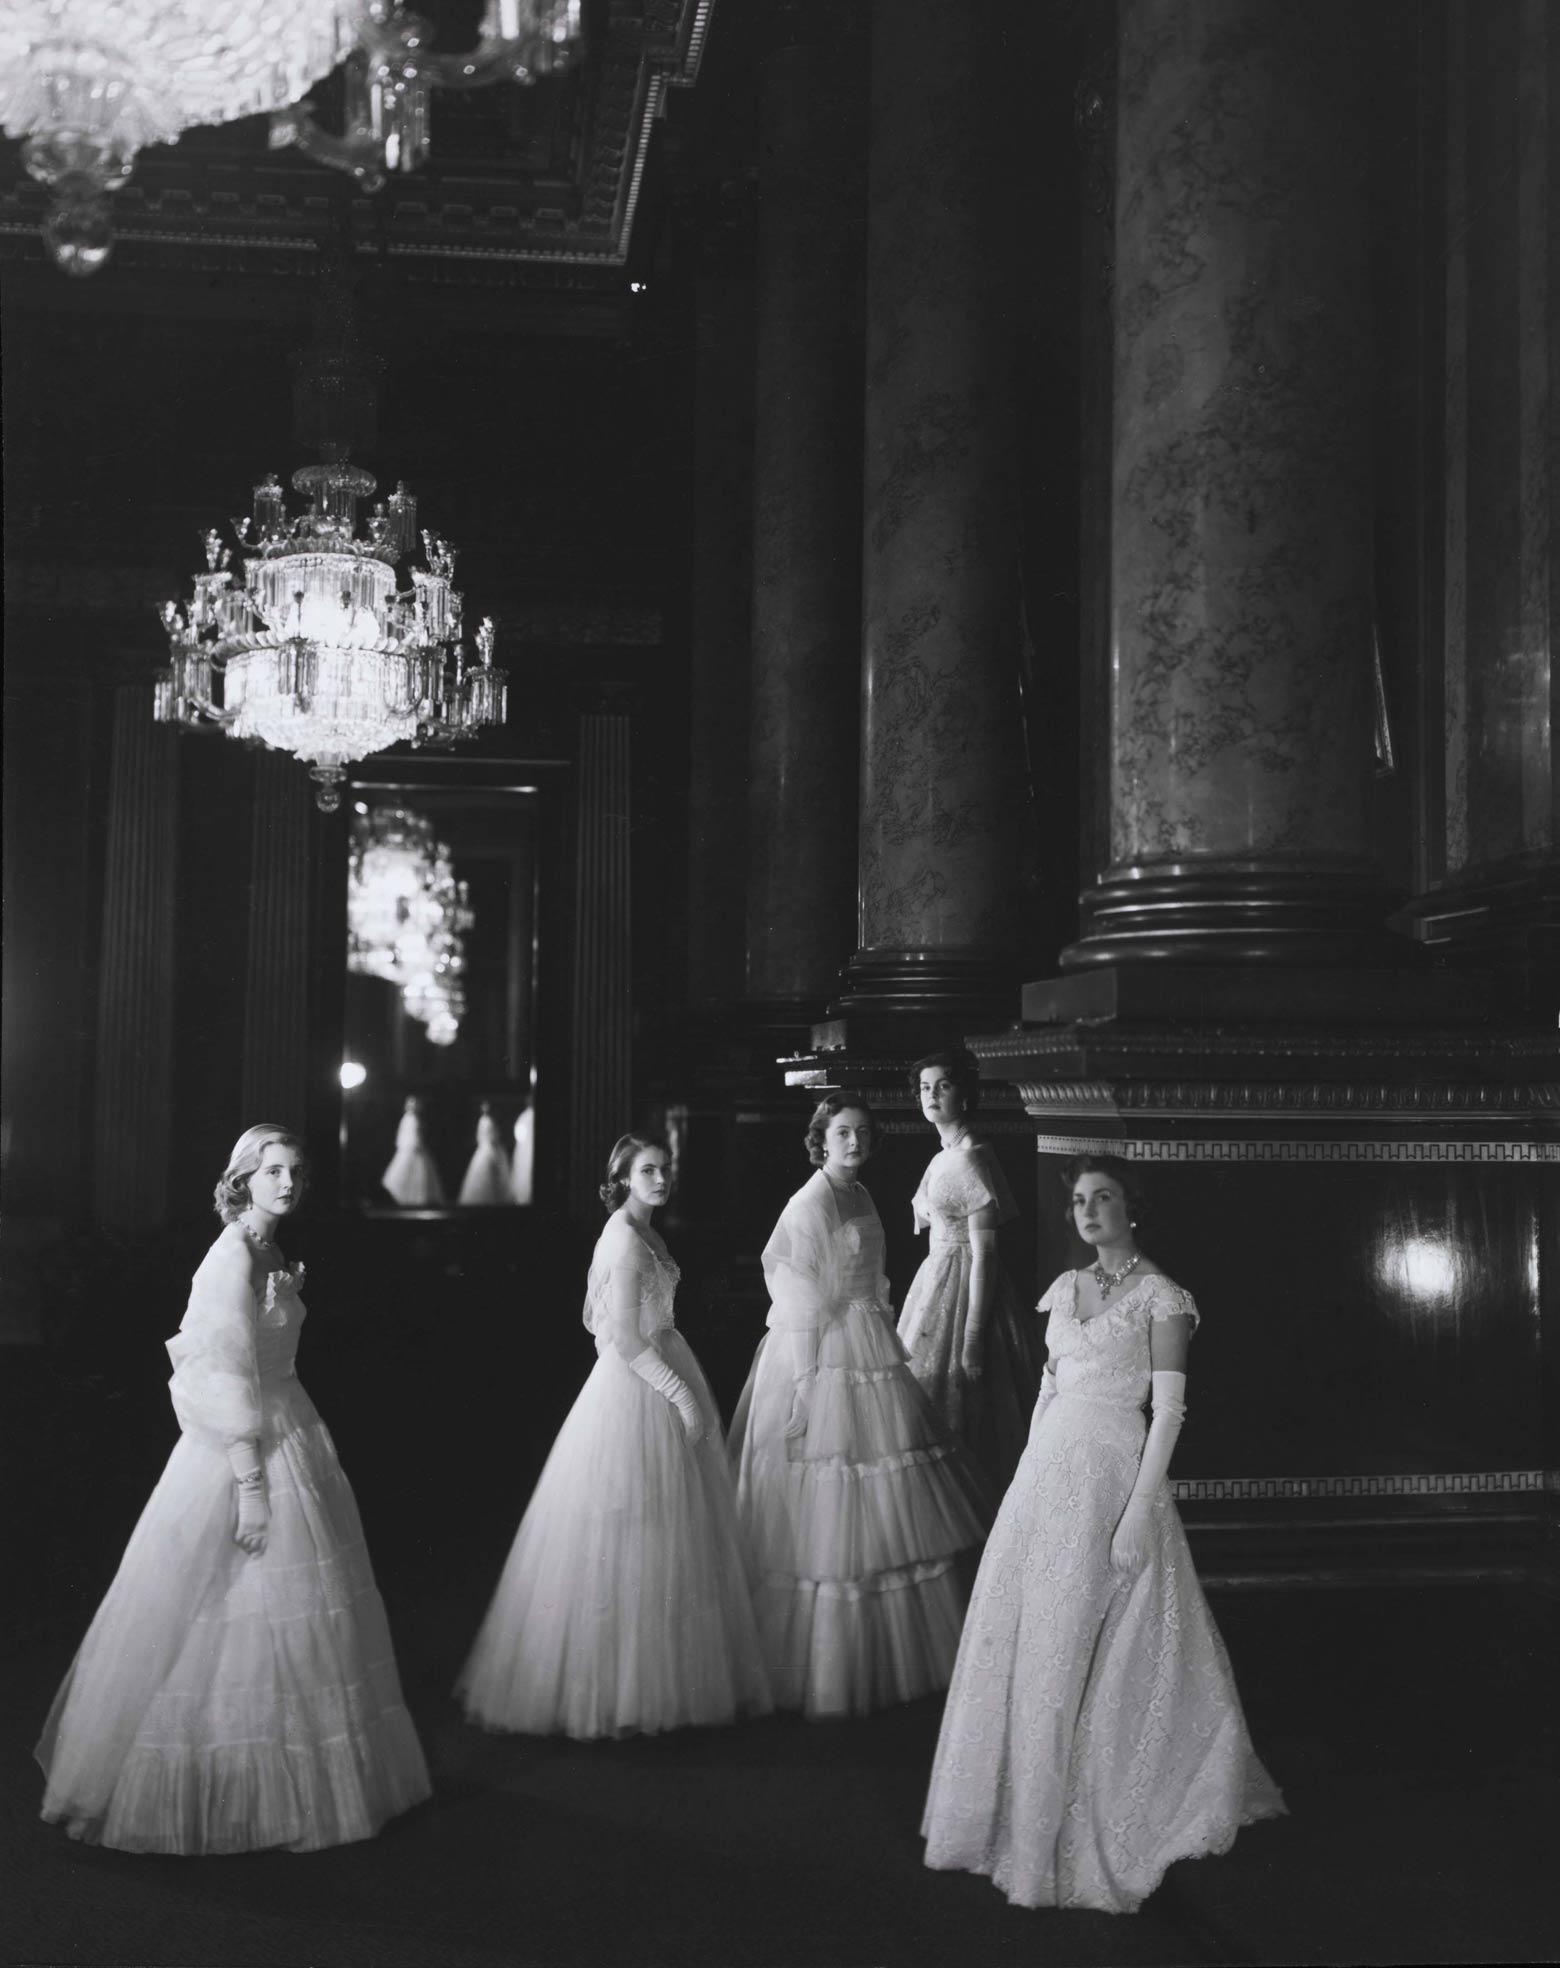 1930s Maids of Honor by Cecil Beaton at the coronation of Queen Elizabeth II